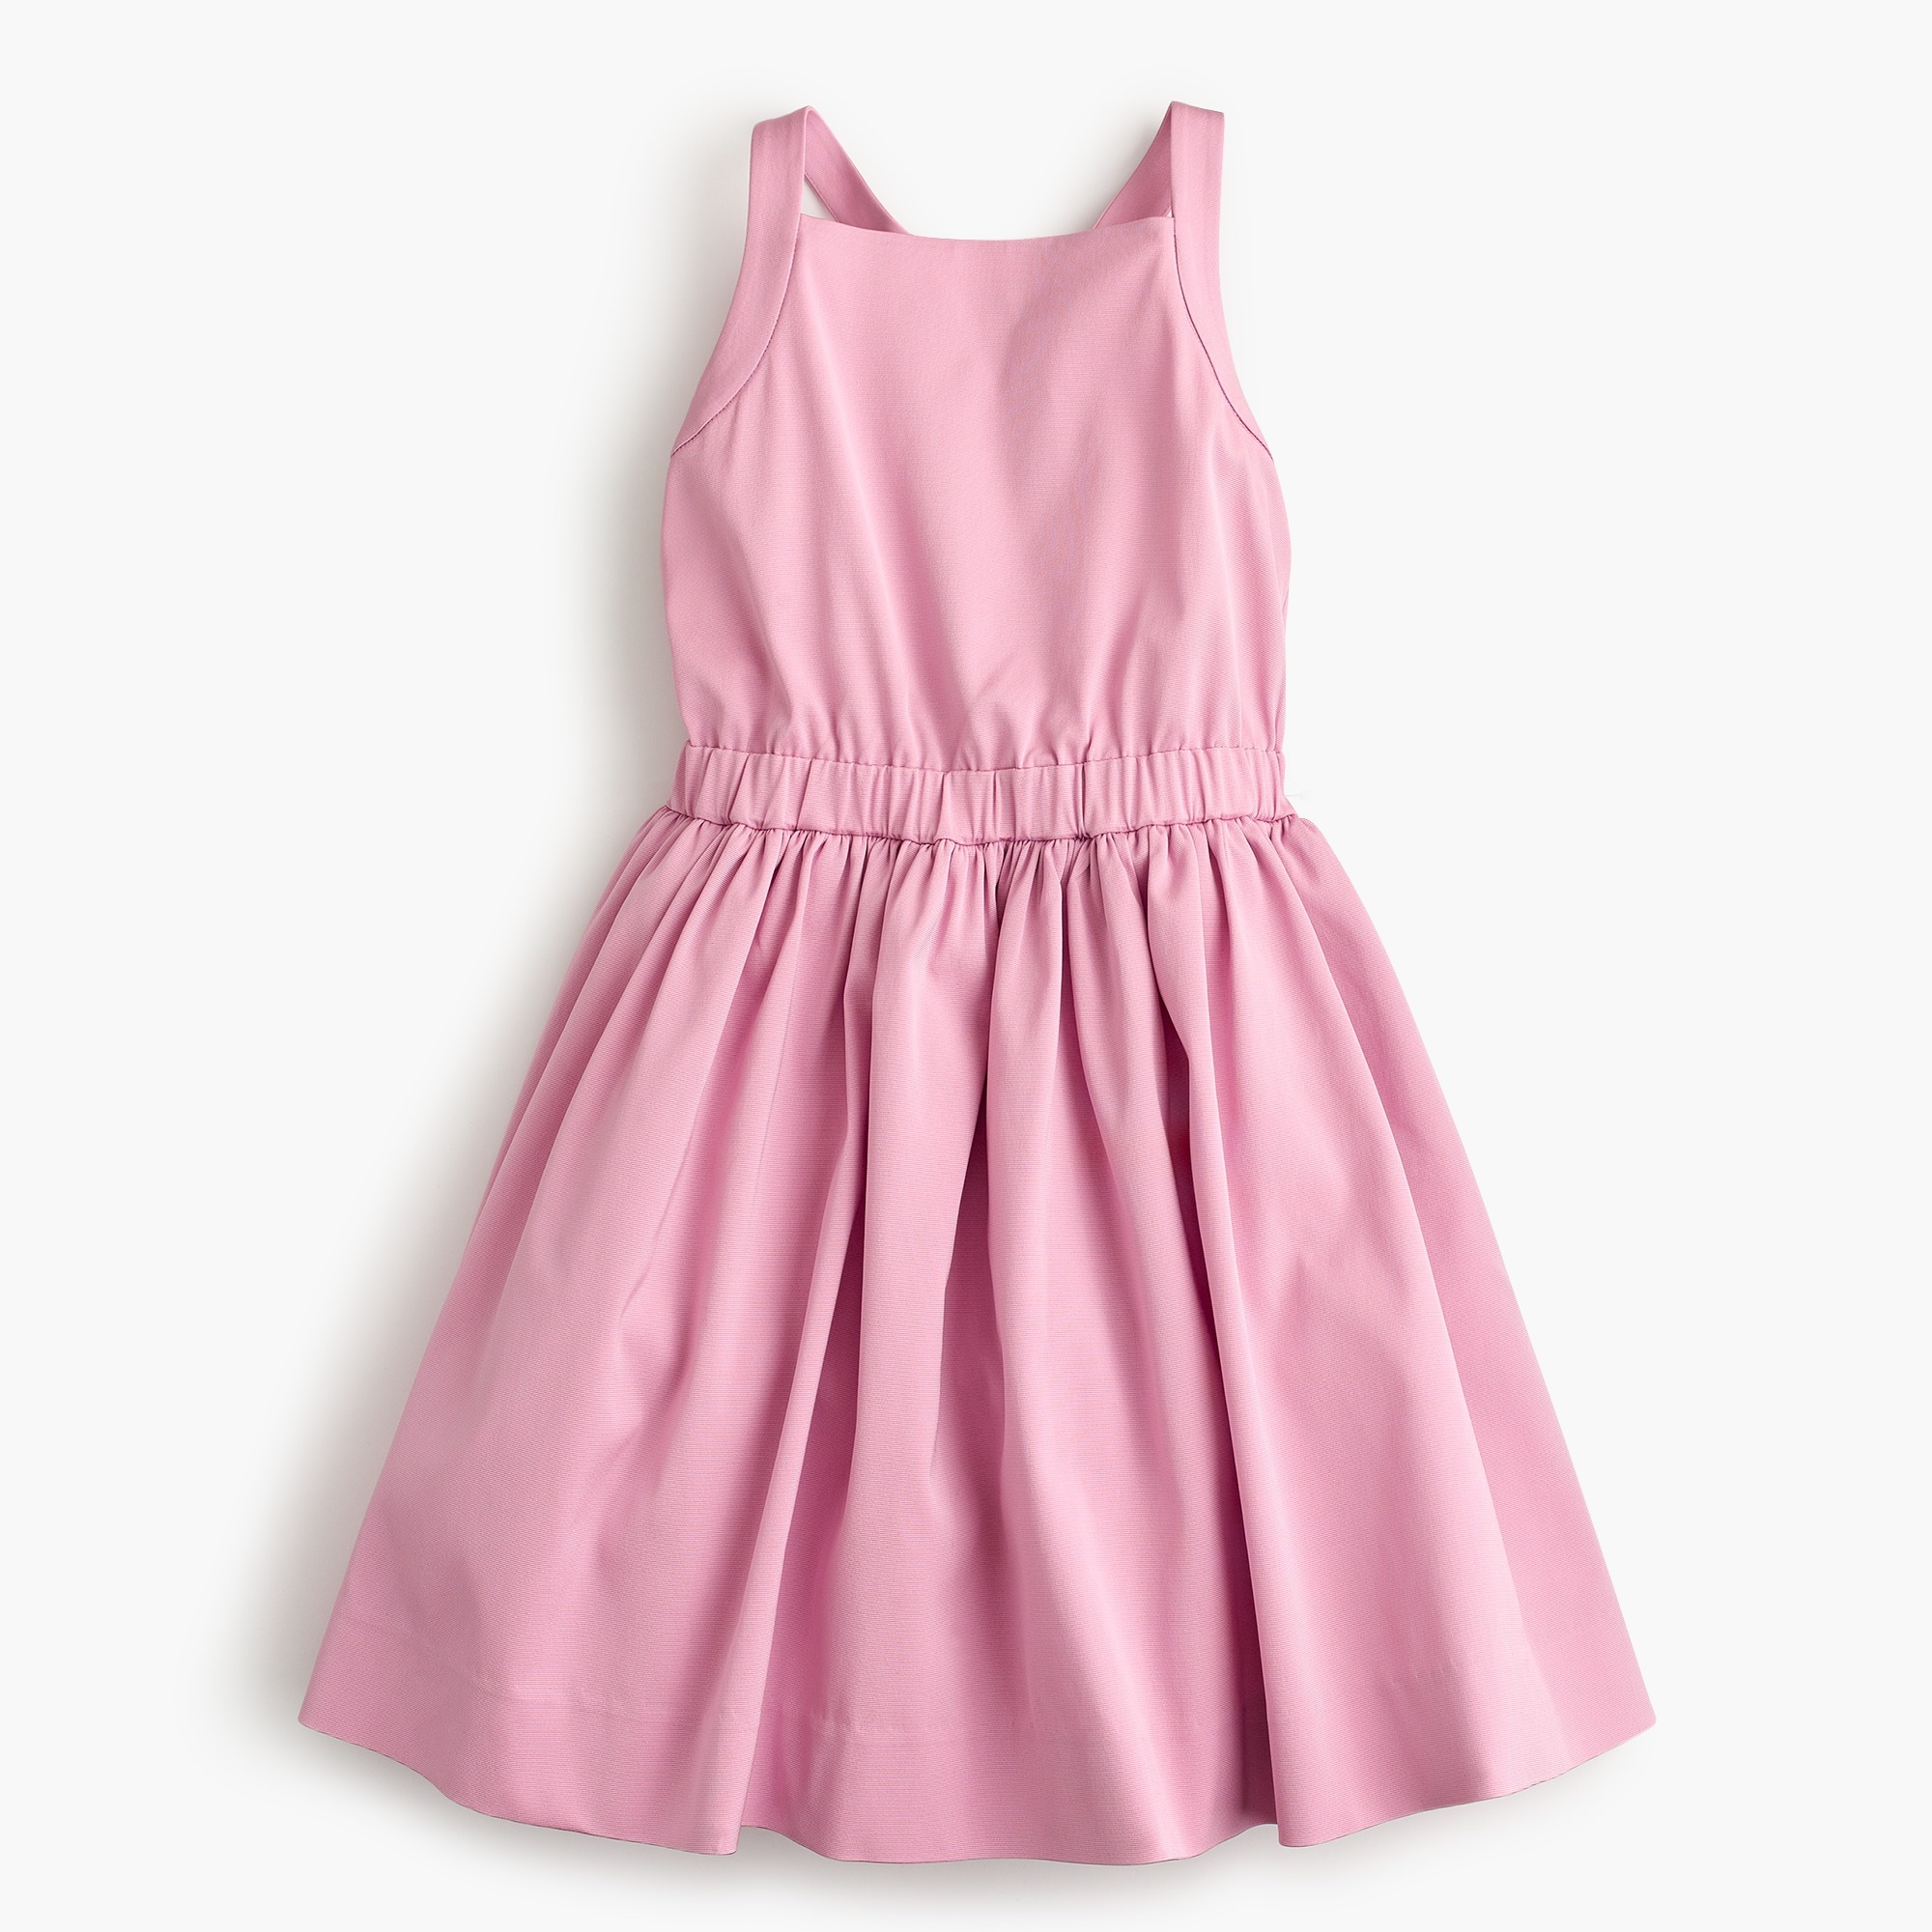 Girls' bow-back dress in stretch faille girl dresses c